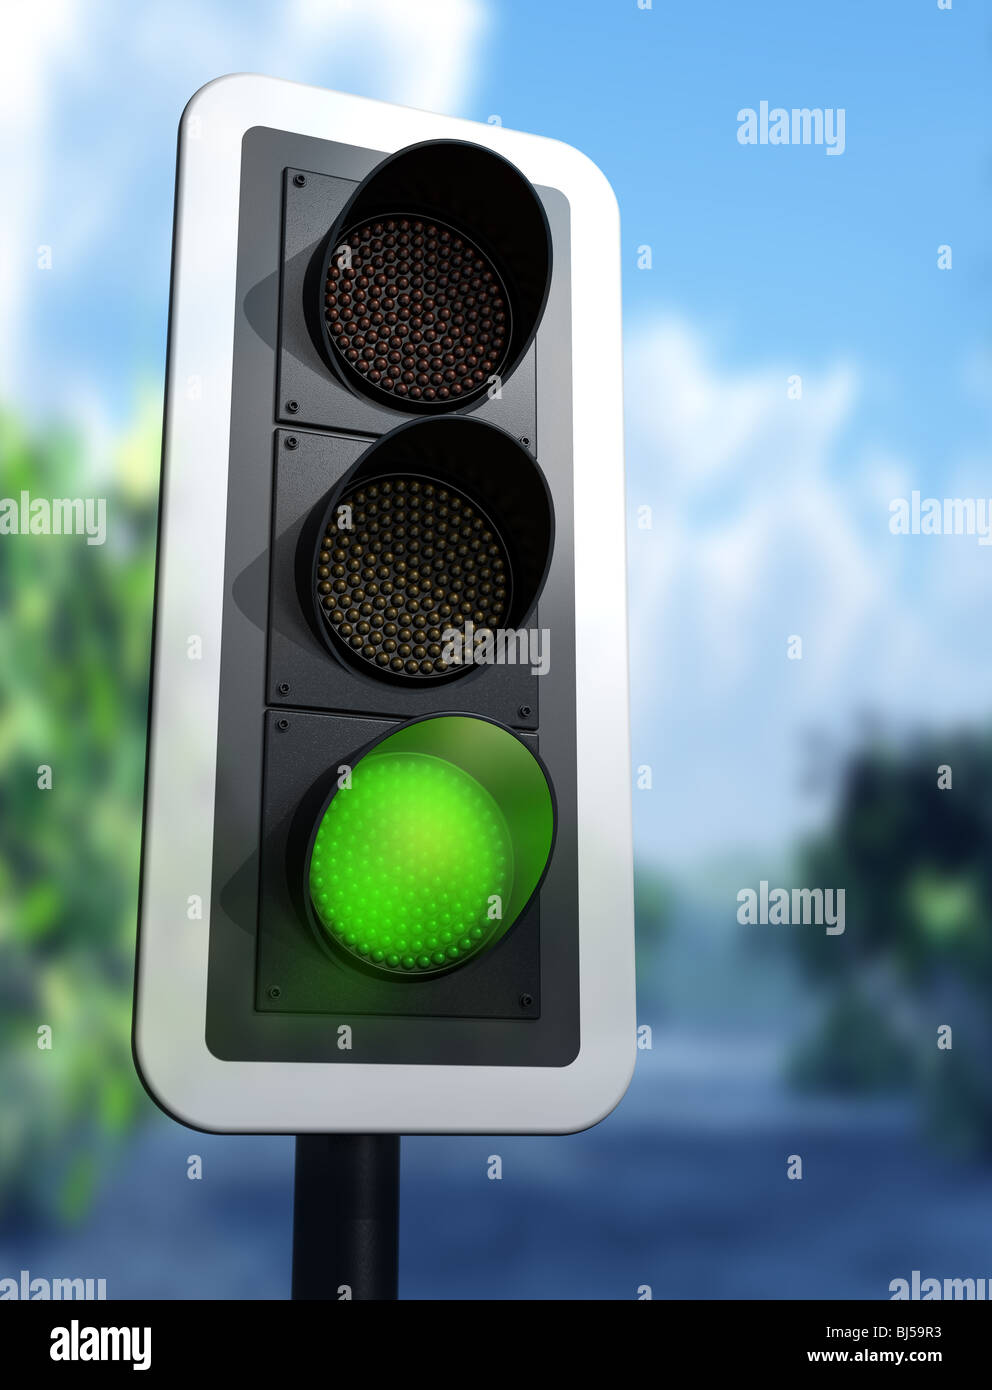 Illustration of a green traffic light on a country road - Stock Image